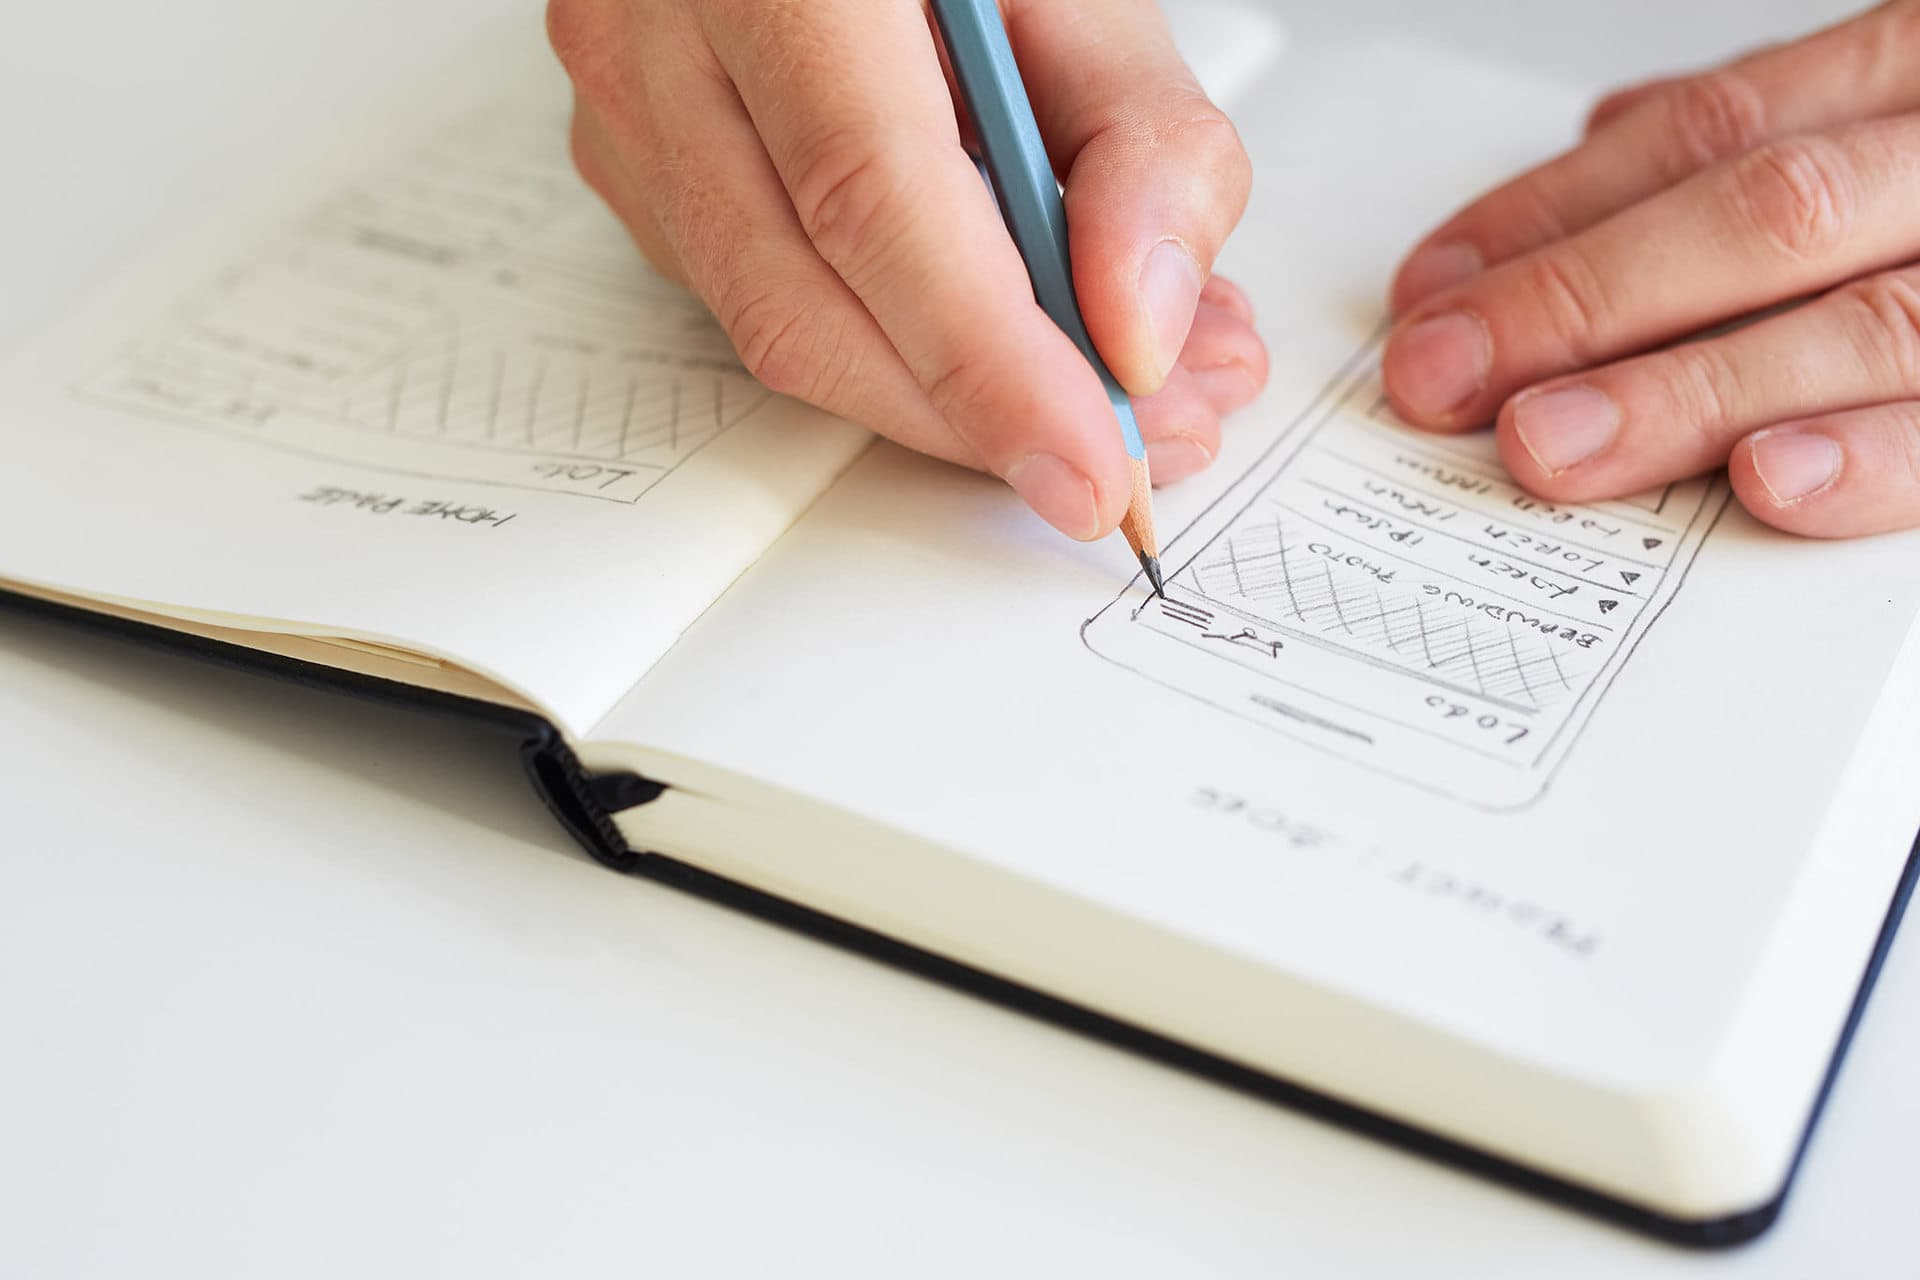 person sketching in a book